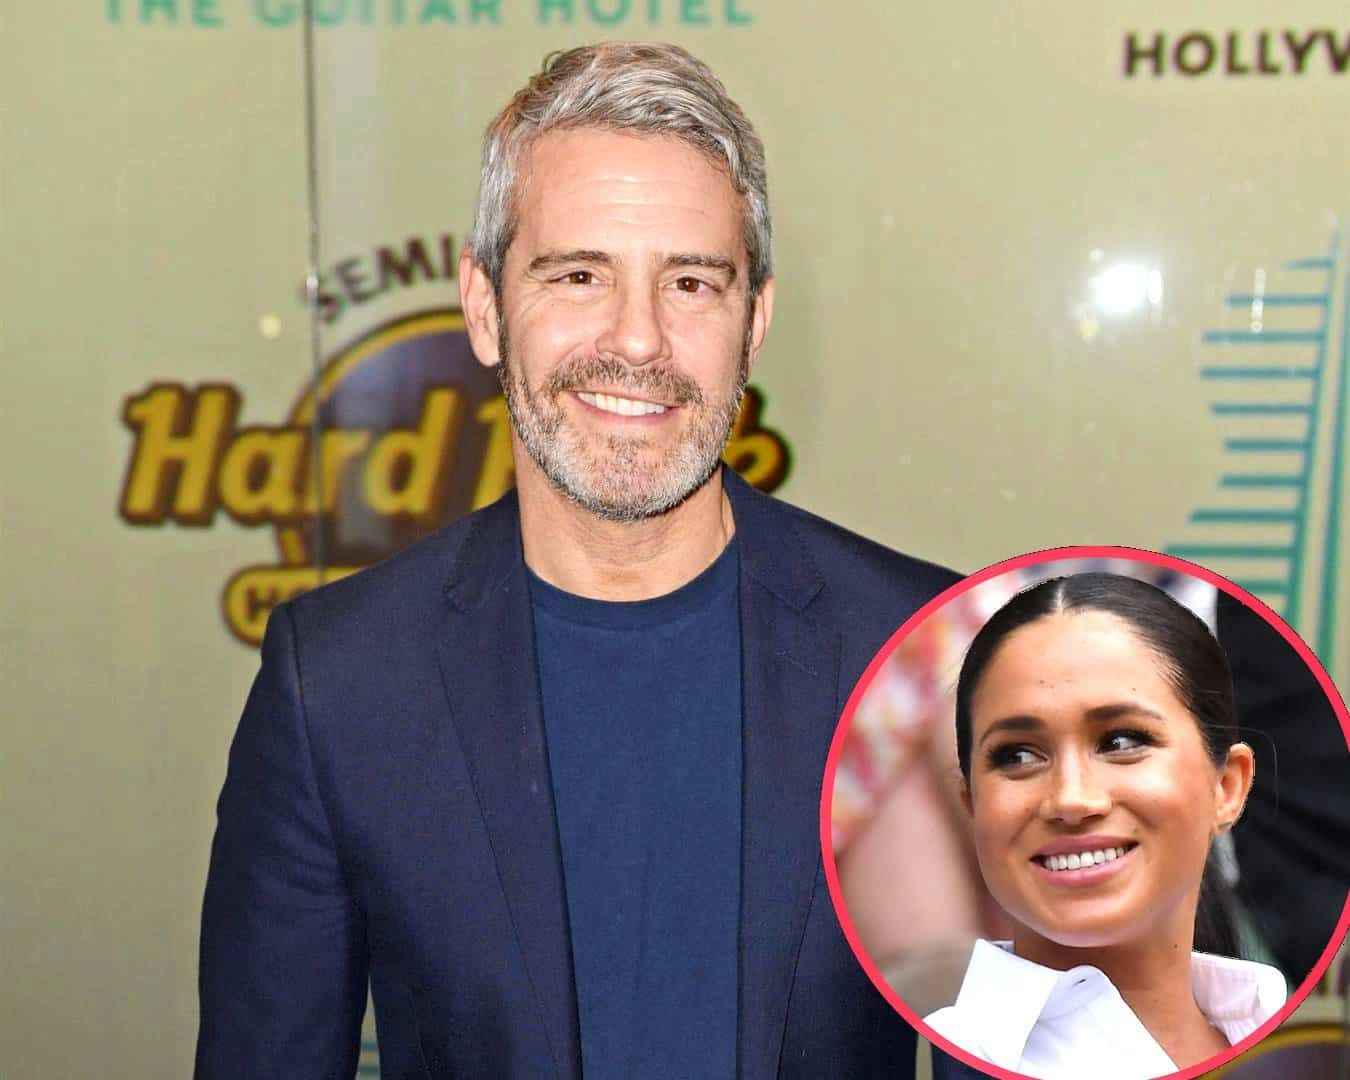 Andy Cohen Names Hardest Guest to Book on WWHL and His Favorite, Plus He Addresses Meghan Markle Interview and Shares the Gifts Ben Received From Housewives